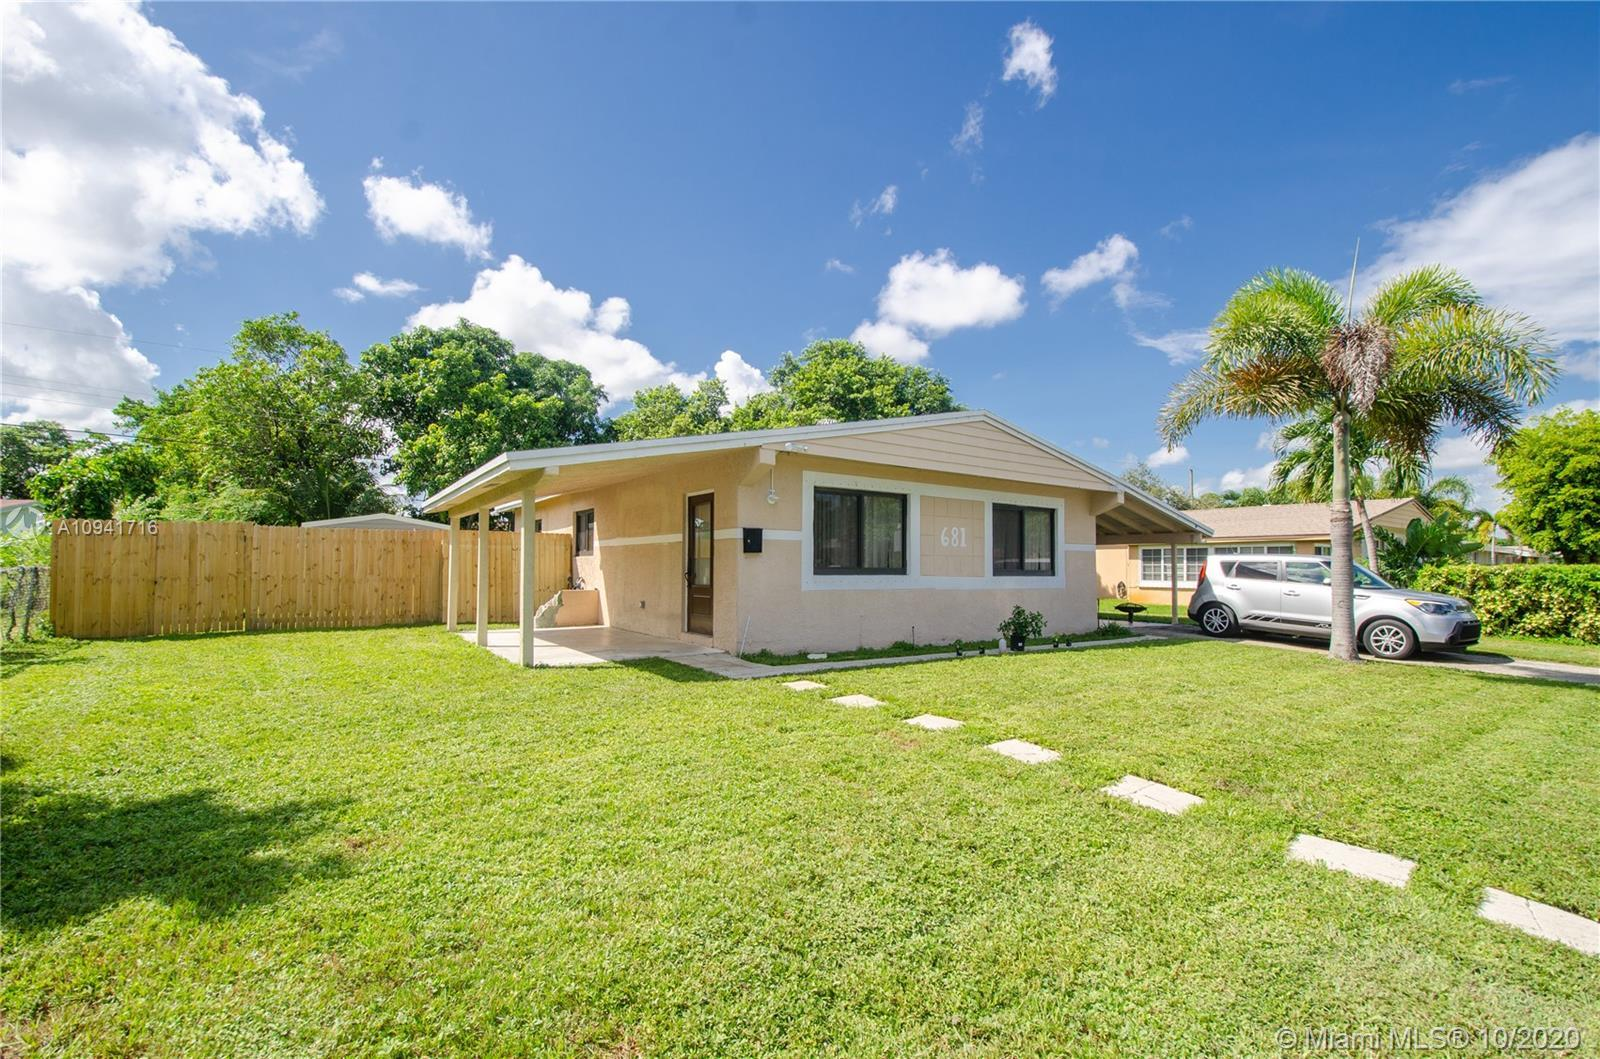 Beautiful and Completely remodeled 3/1 Home in Melrose Manors! This beautiful home features a modern